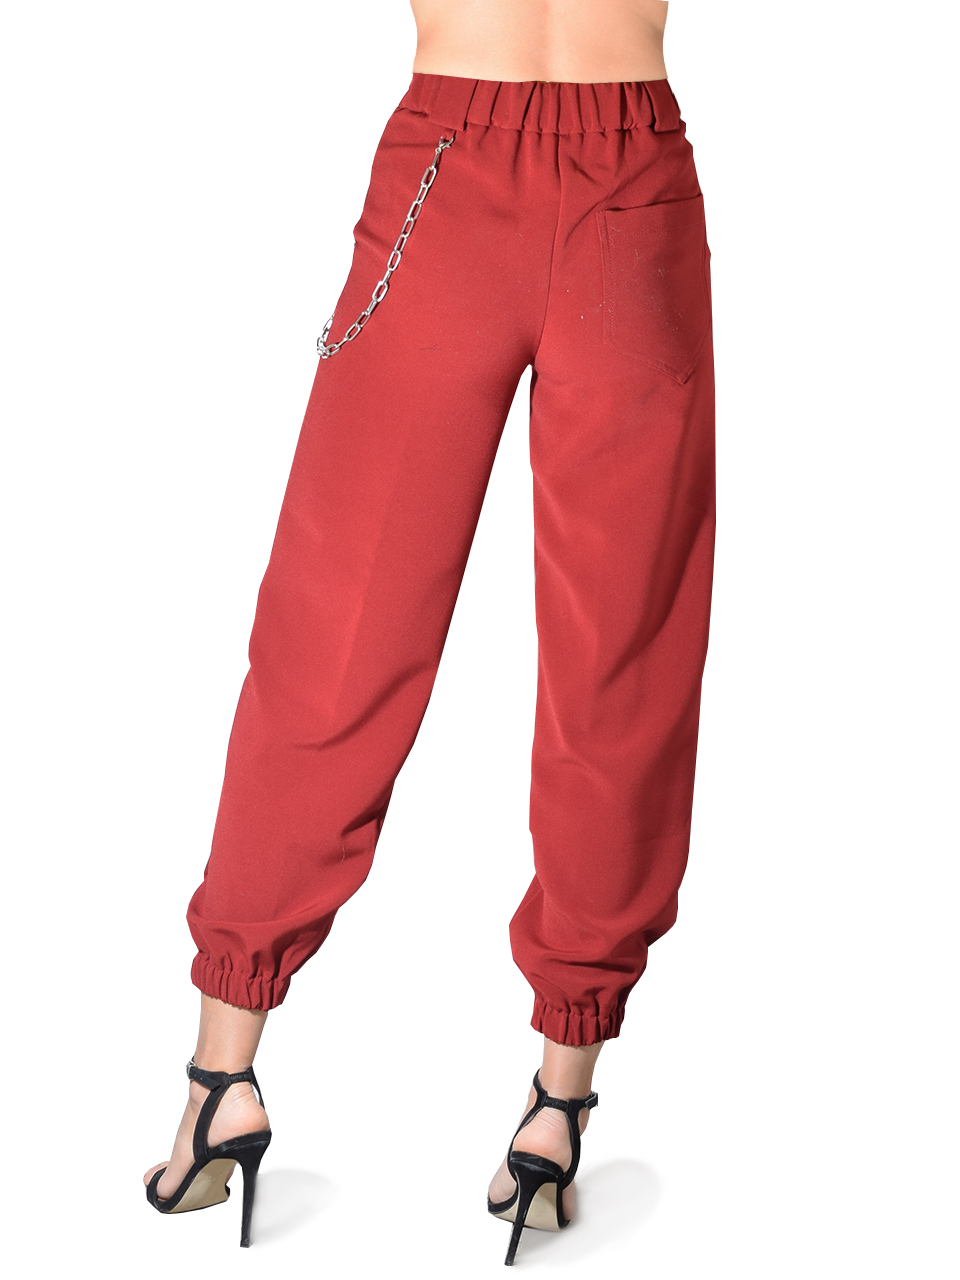 OTTAD'AME Chained Pants In Red